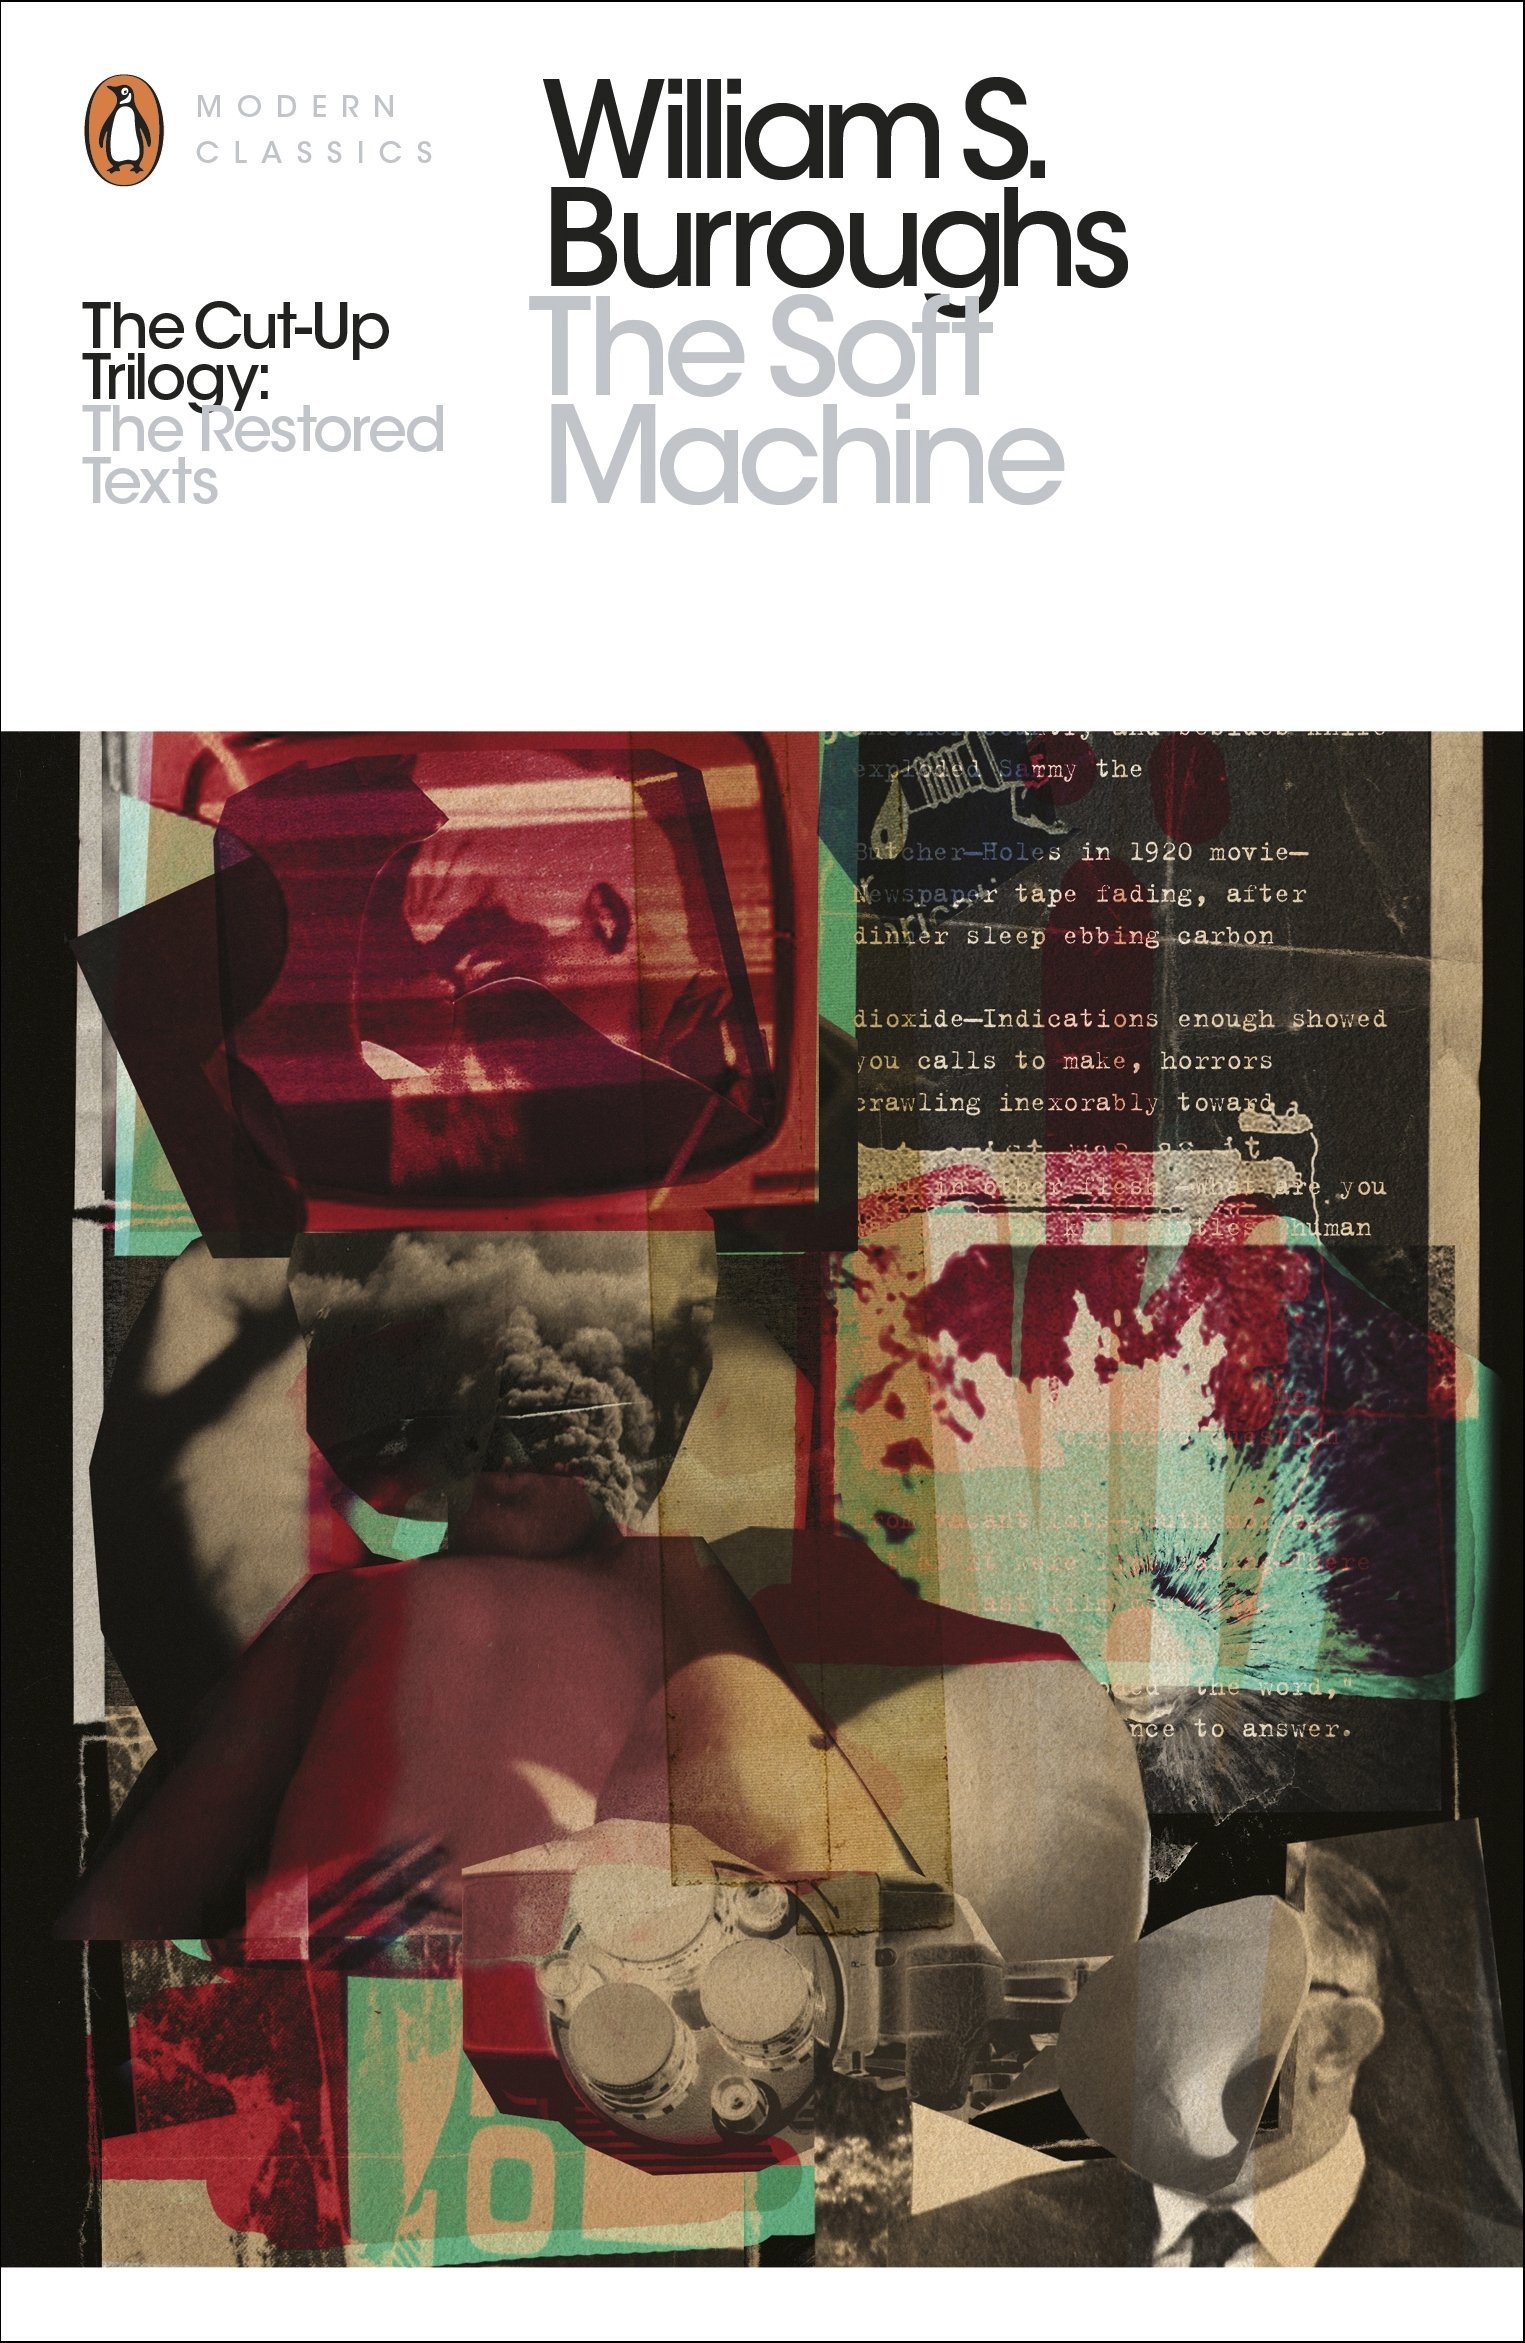 The Soft Machine: The Restored Text (Penguin Modern Classics)